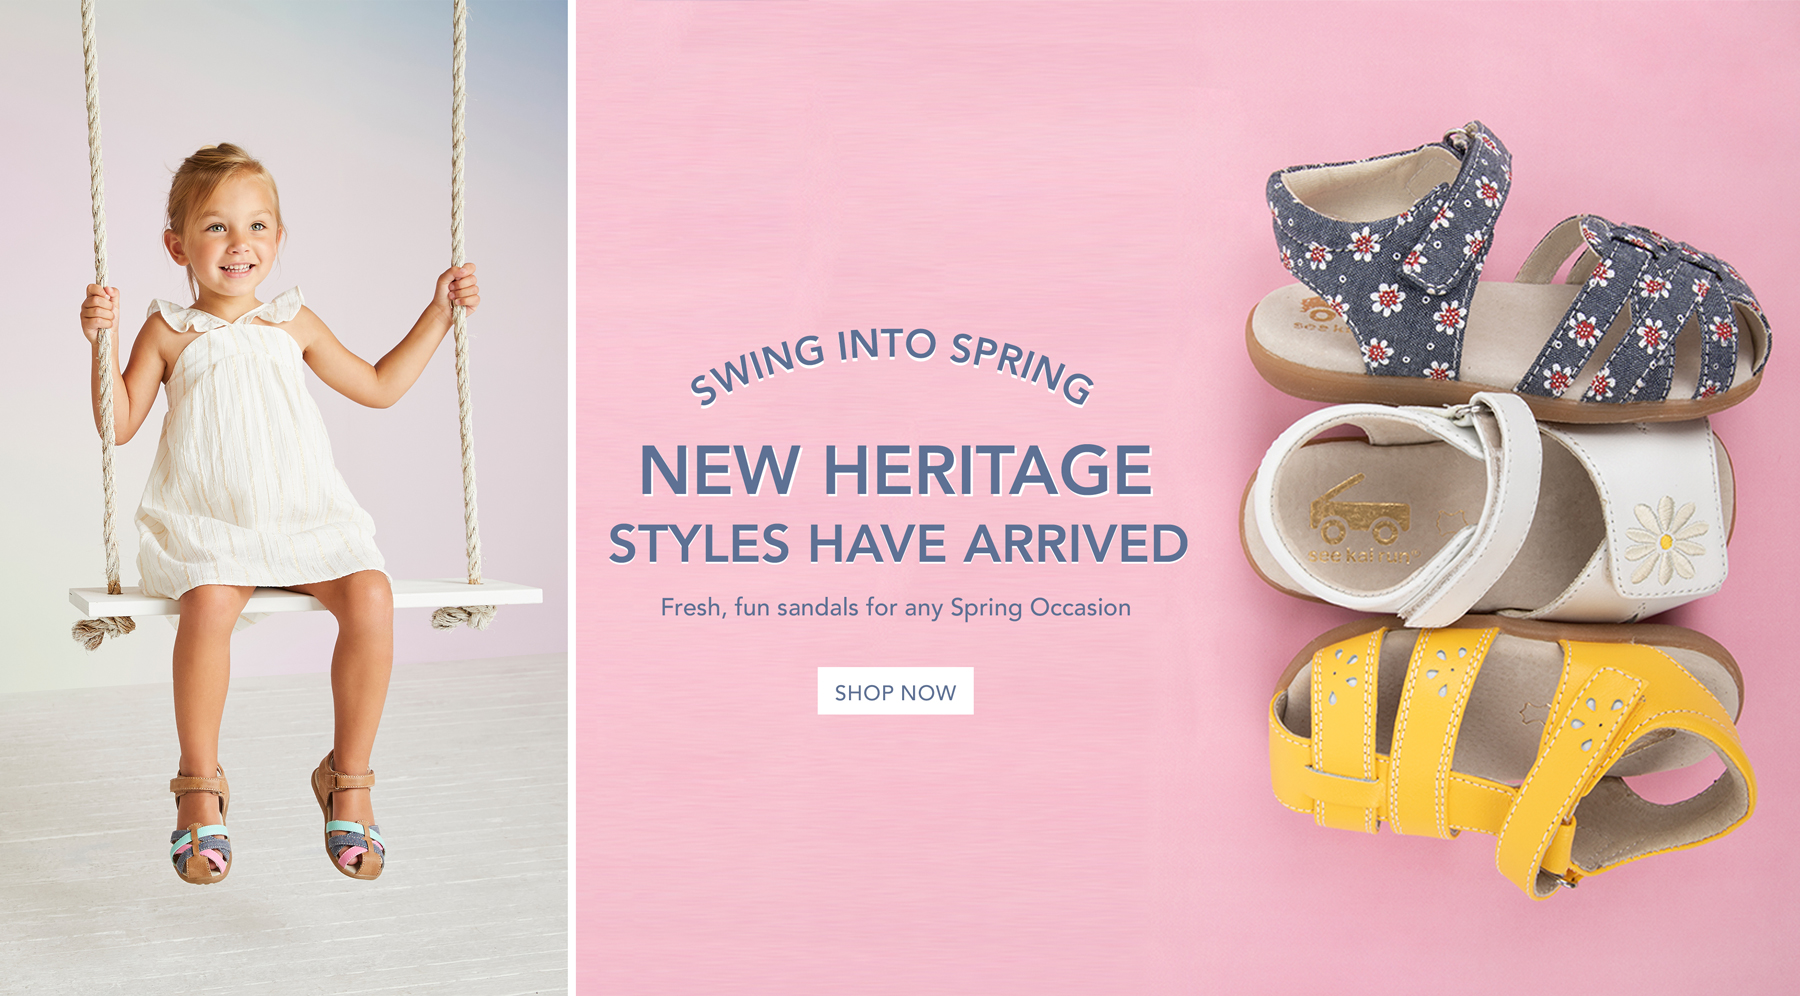 Swing into springe. New Heritage styles have arrived. Fresh, fun sandals for any spring occasion. Shop now.